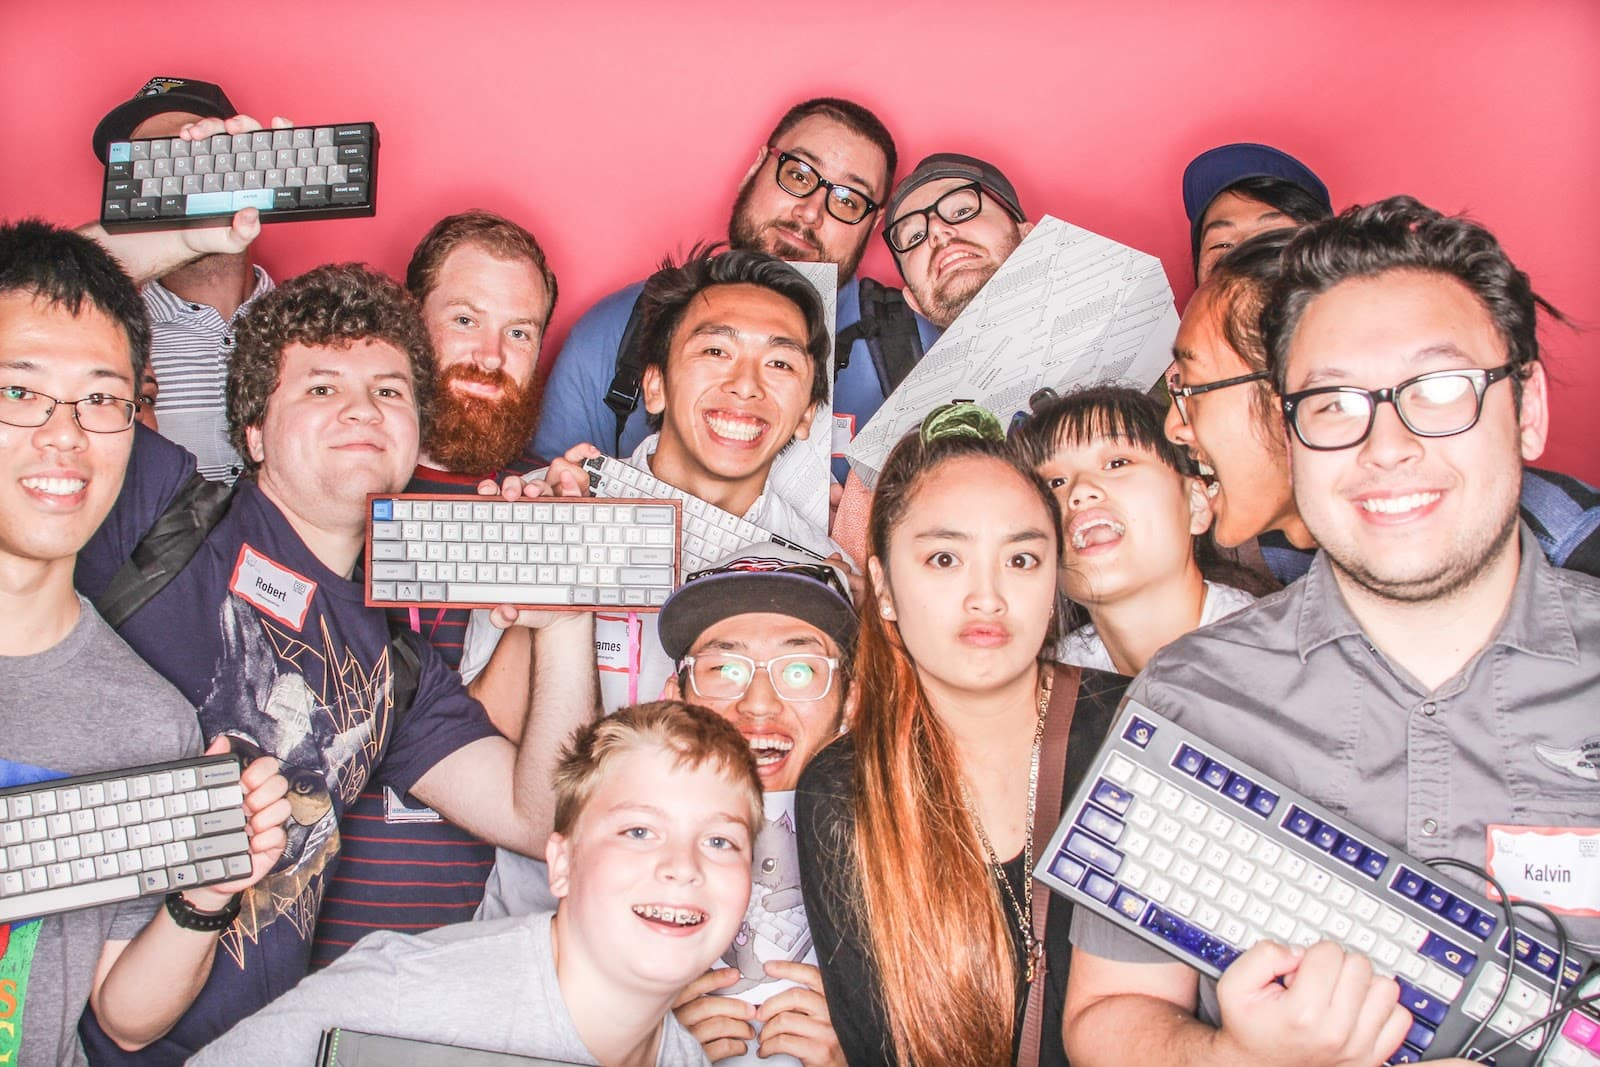 Seattle Mechanical Keyboard Photo Booth July 2017